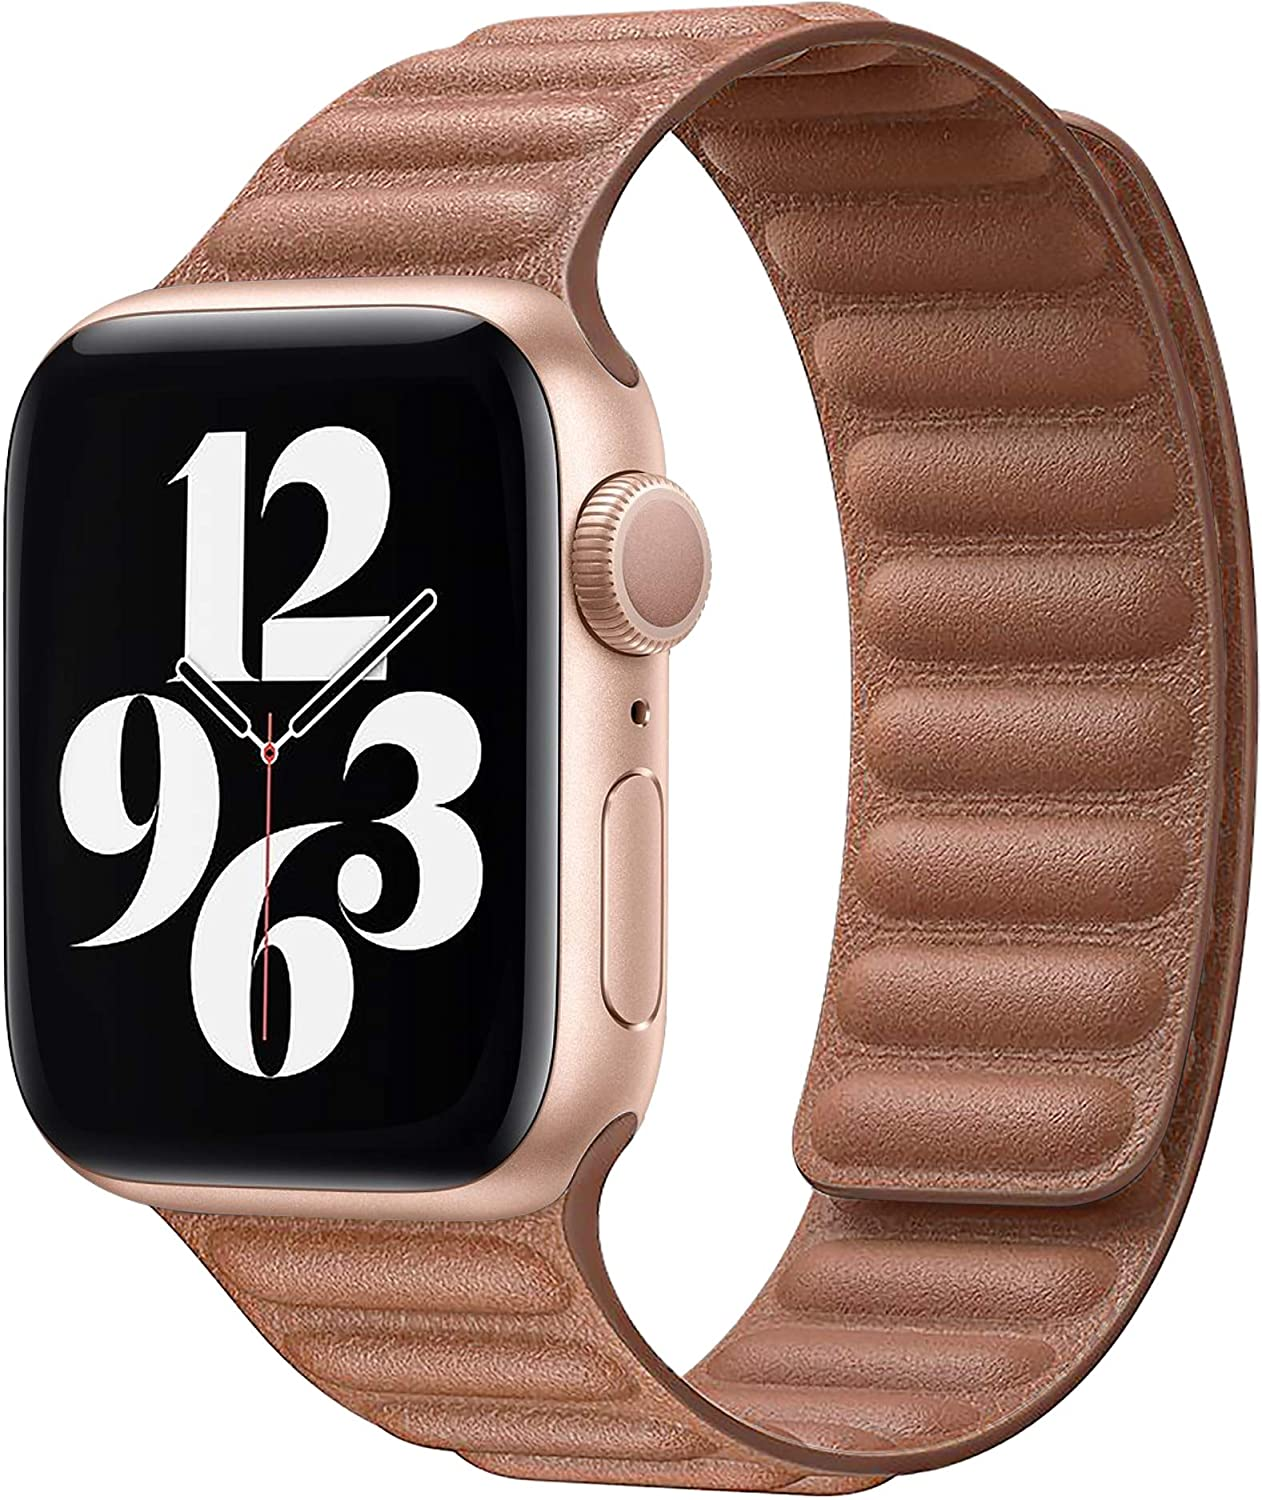 Ruiboo Leather Link Band Compatible with Apple Watch Band 38mm 40mm 42mm 44mm iWatch Series 6 5 SE 4 3 2 1 Strap, Latest Magnetic Closures Stainless Steel Flexible Molded Adjustable Wrist Replacement